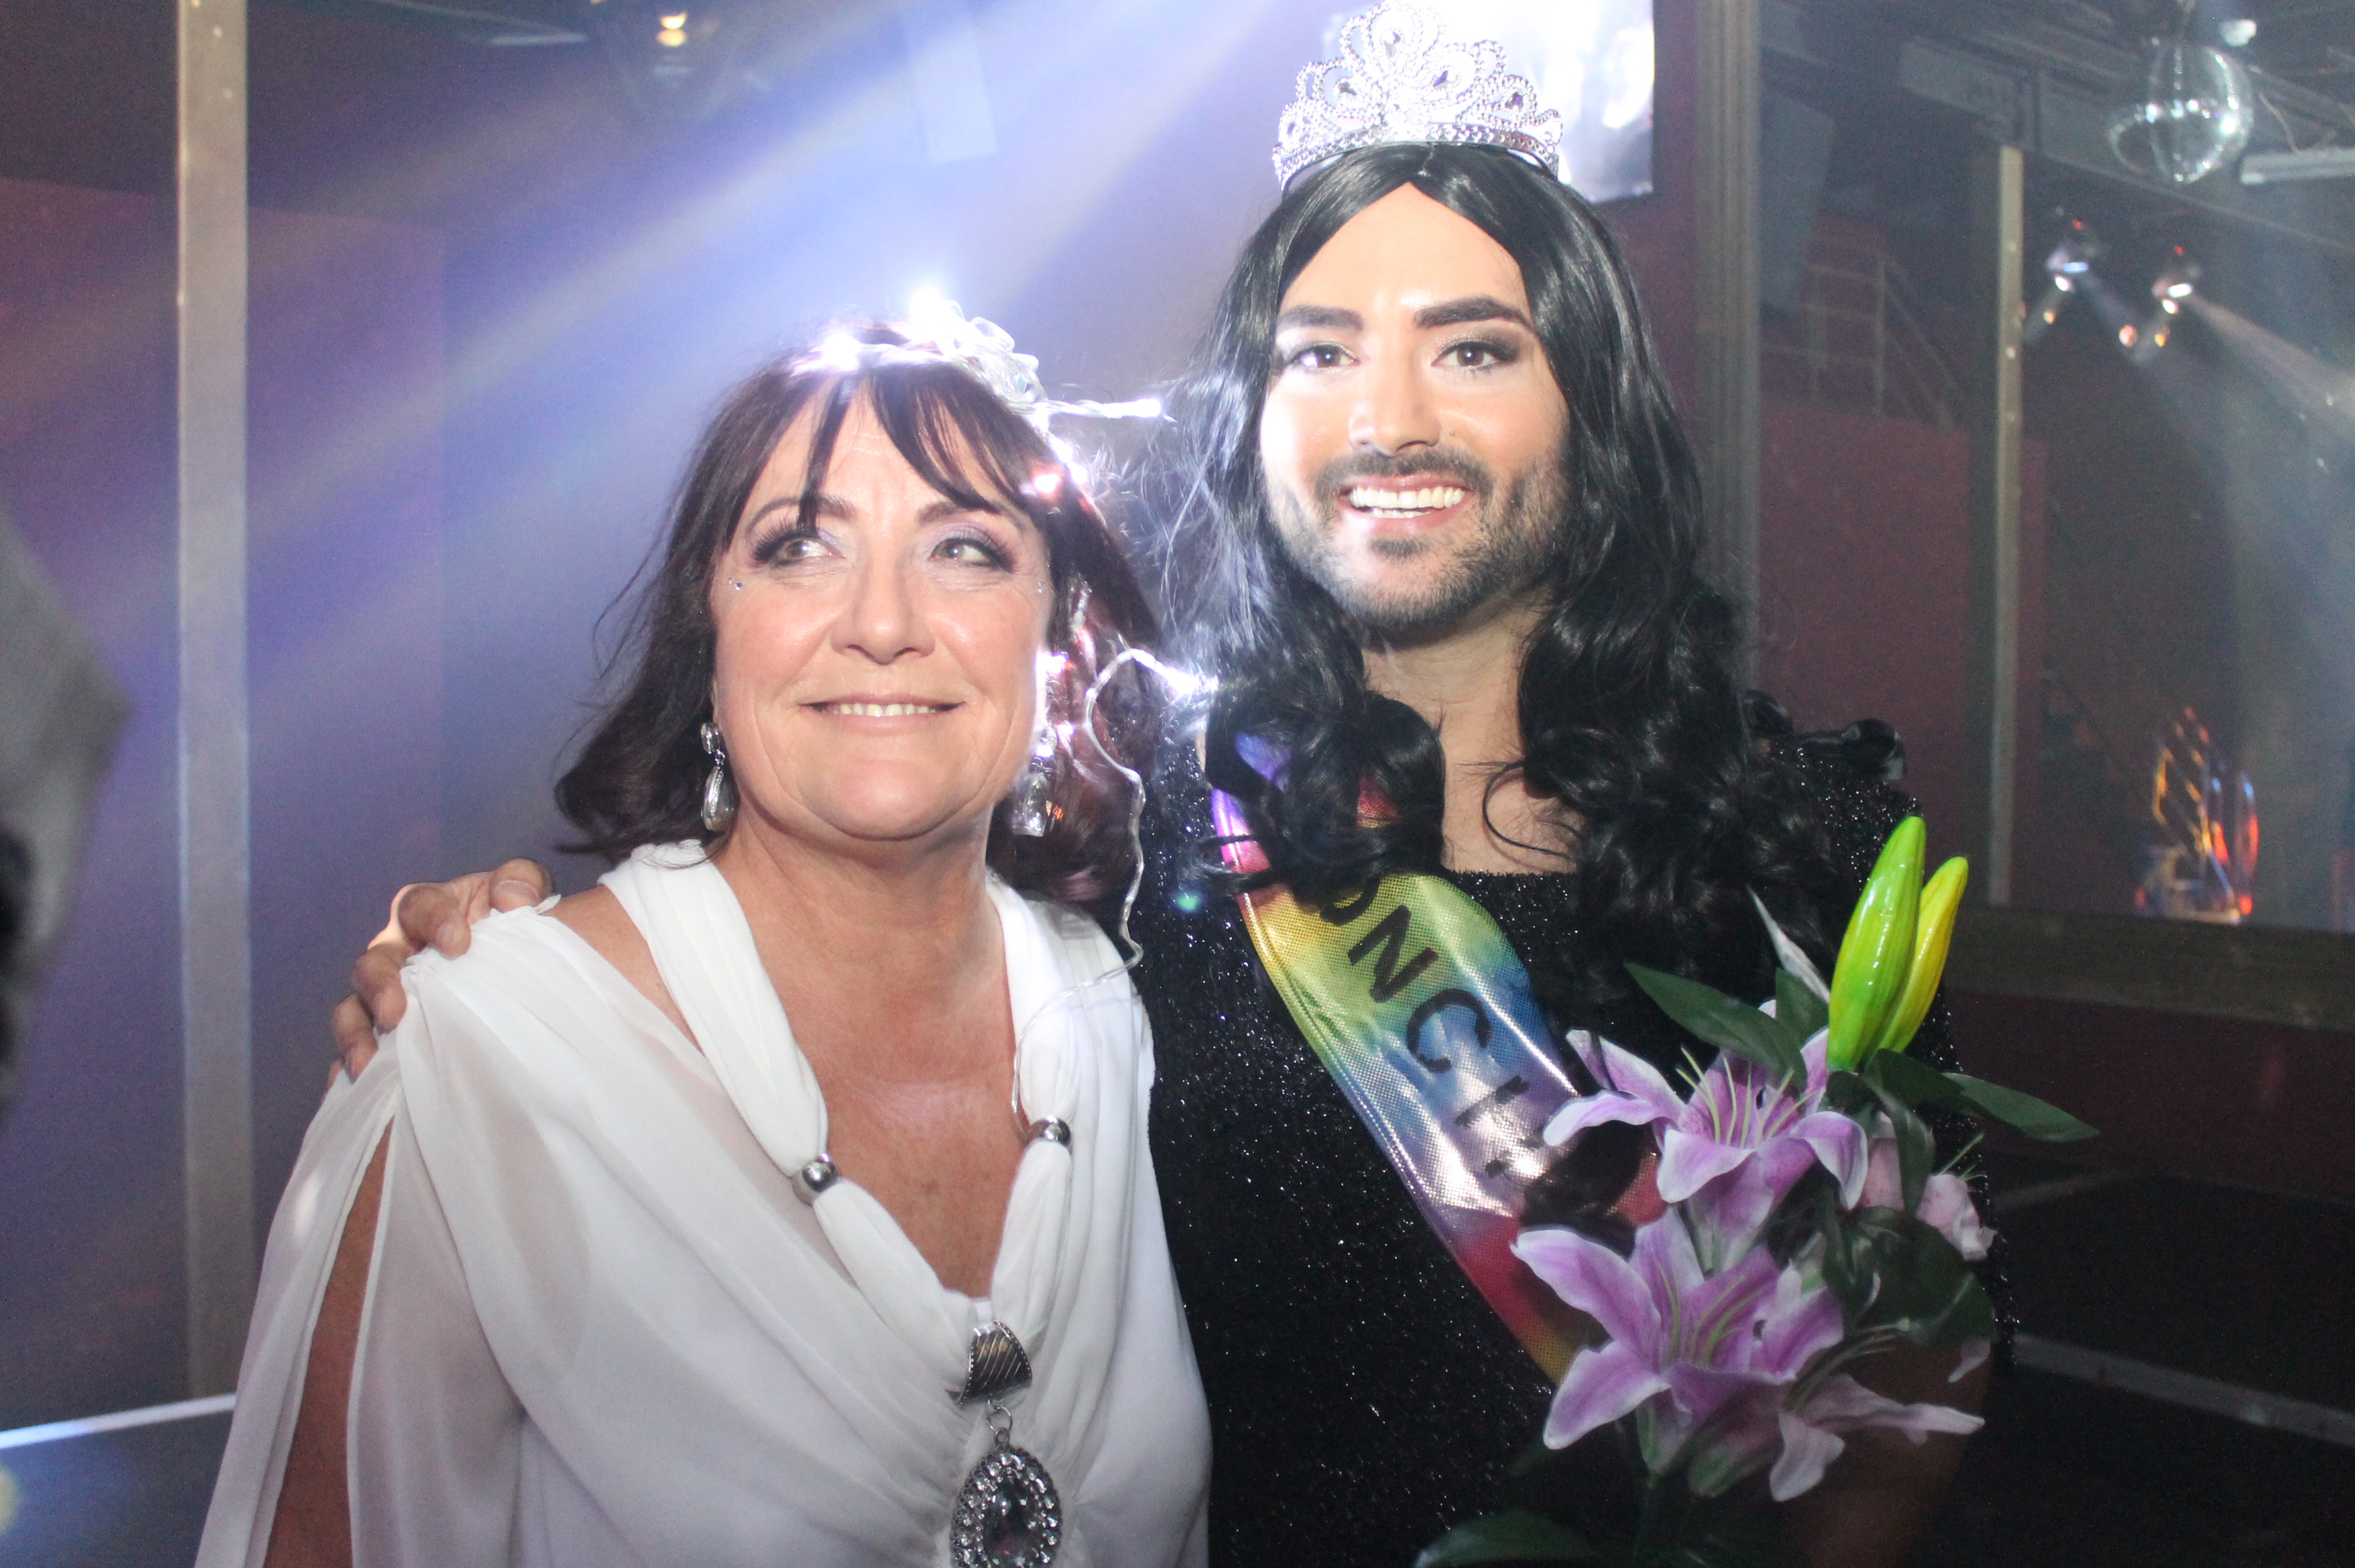 Conchita Wurst lookalike in Perth, Australia